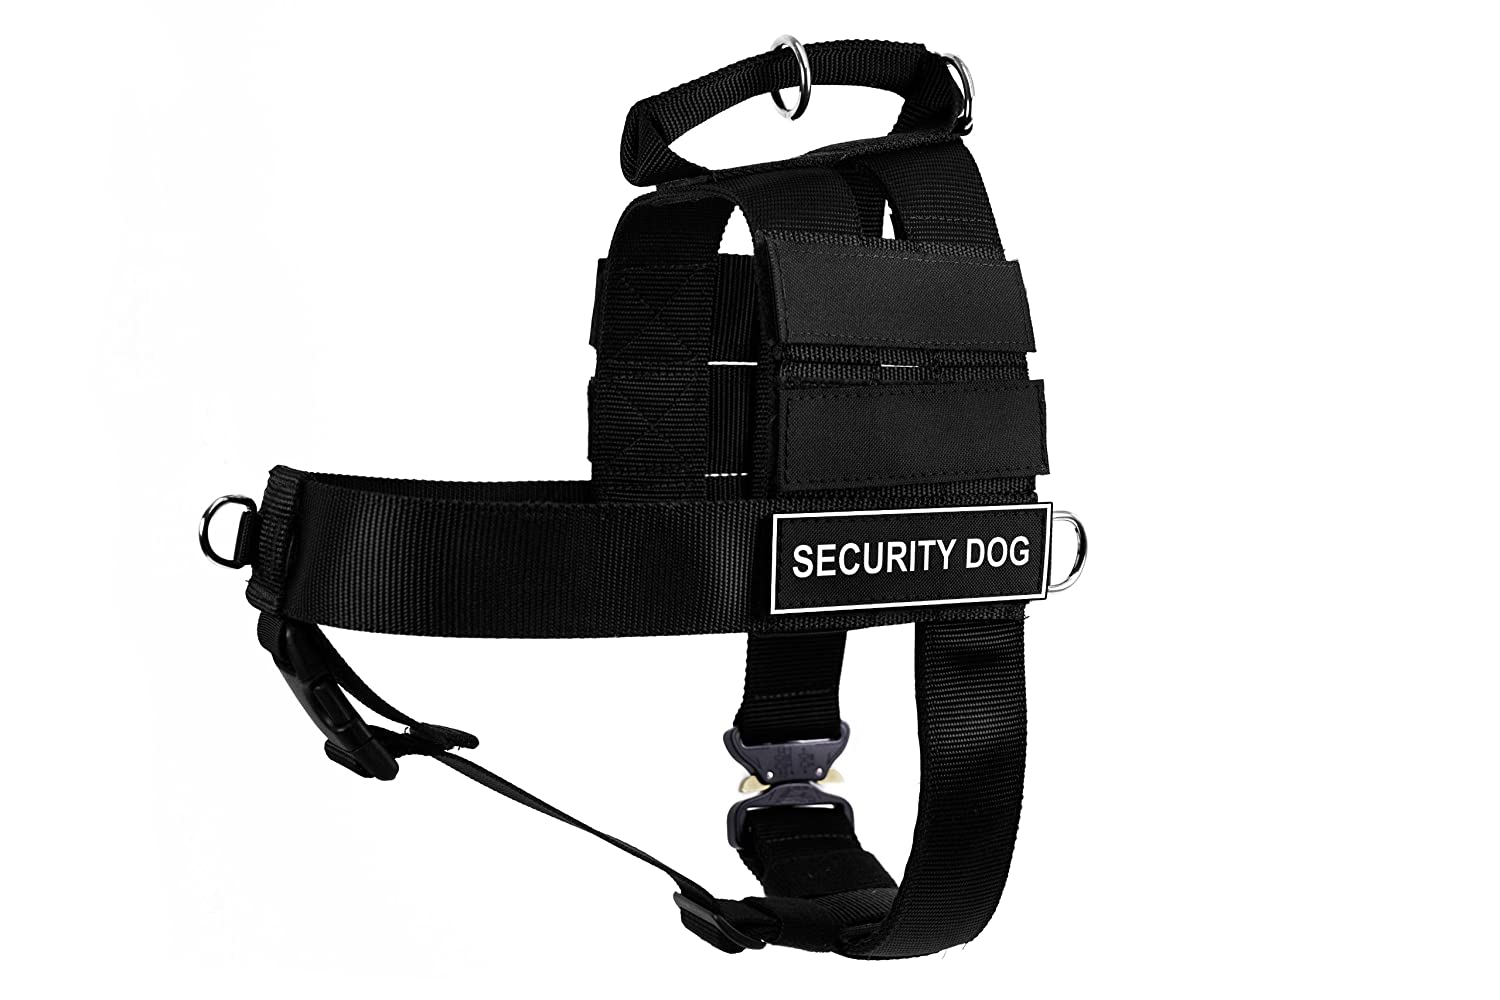 Dean & Tyler DT Cobra Security Dog No Pull Harness, Medium, Black